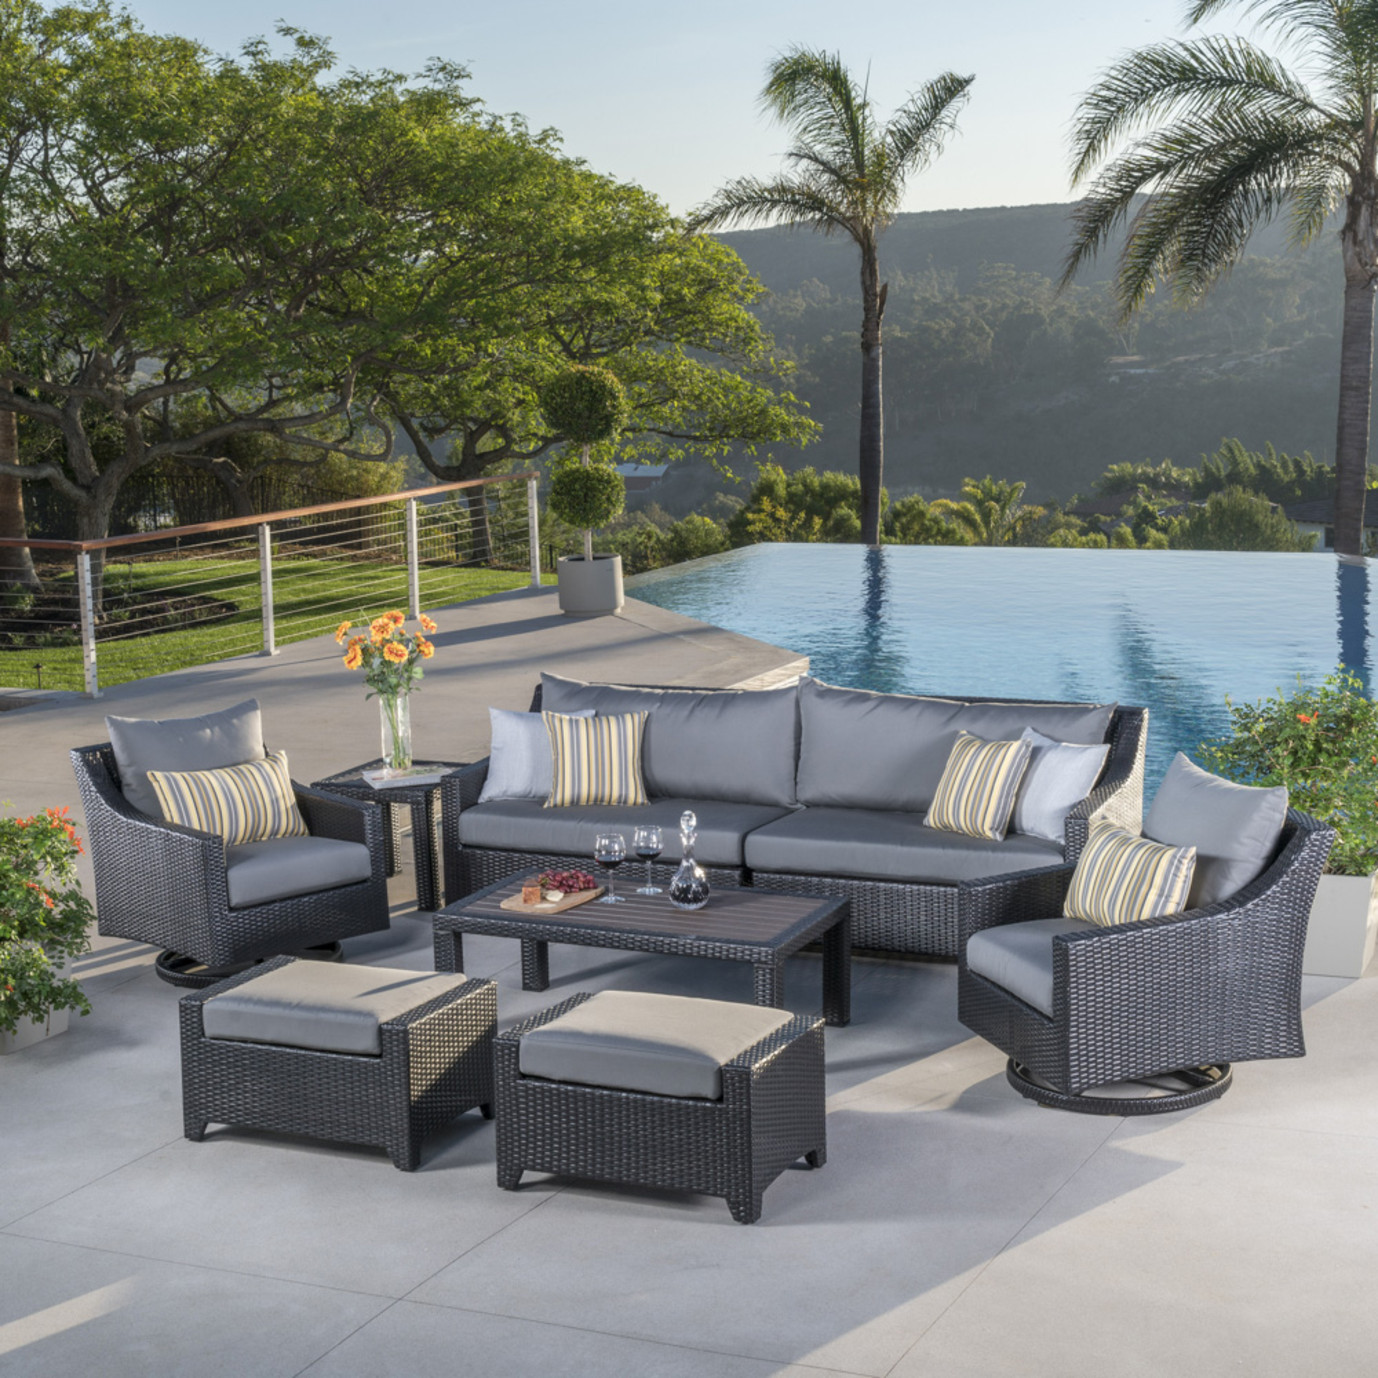 Deco™ Deluxe 8pc Sofa & Club Chair Set - Charcoal Grey